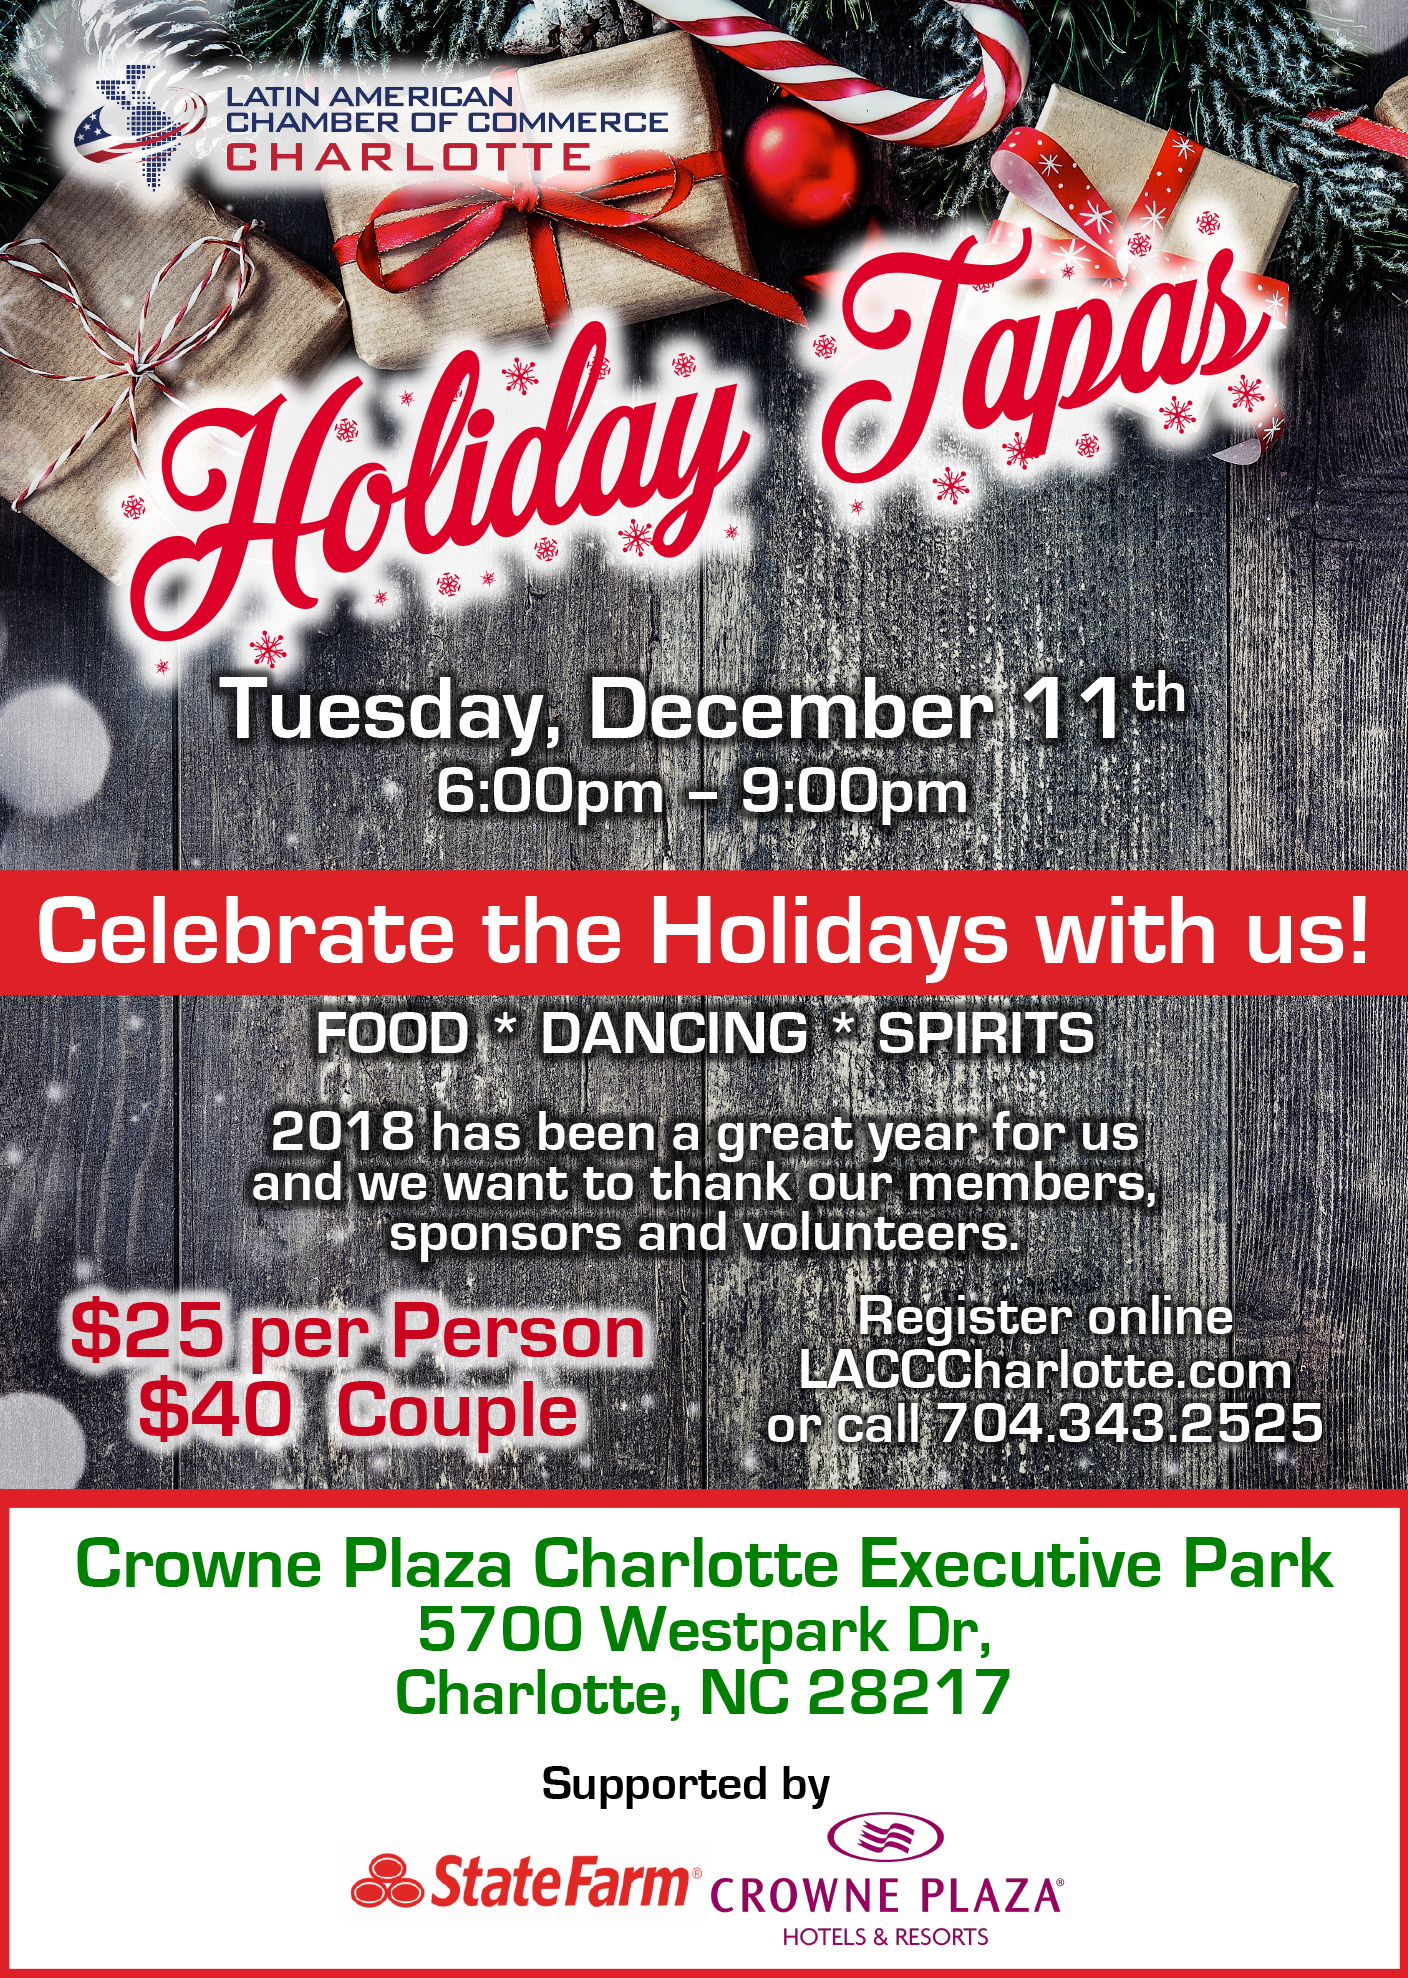 Latin American Chamber of Commerce - Holiday Tapas 2018 at Crowne Plaza Charlotte Executive Park @ Crowne Plaza Charlotte Executive Park | Charlotte | North Carolina | United States